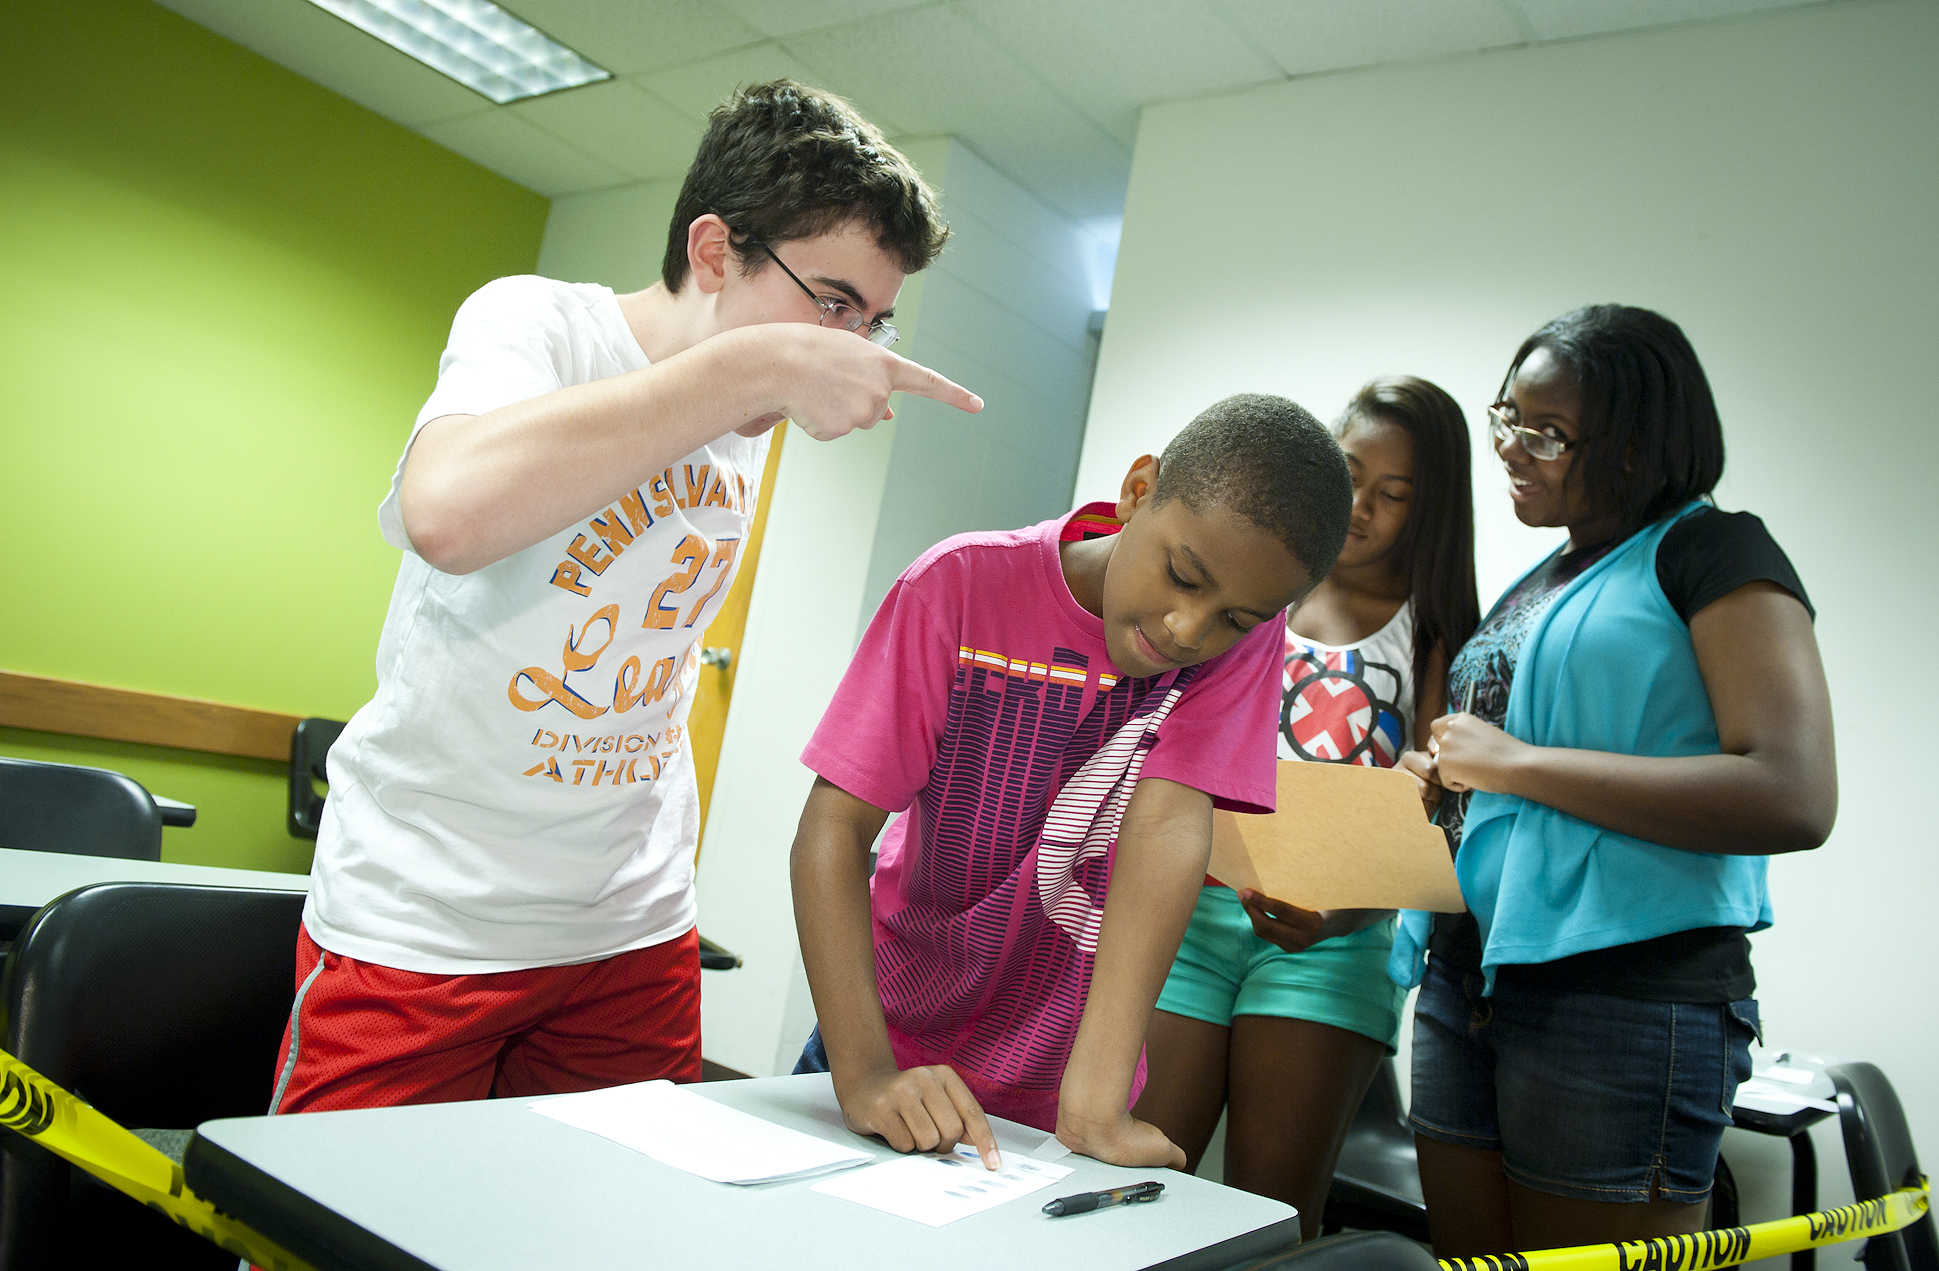 Photo of Tucker Bullock, Elijah Sanders, Kri'Shawn Fleming and Dominique Schmidt solving a crime in Camp Odyssey's Forensic Analysis.